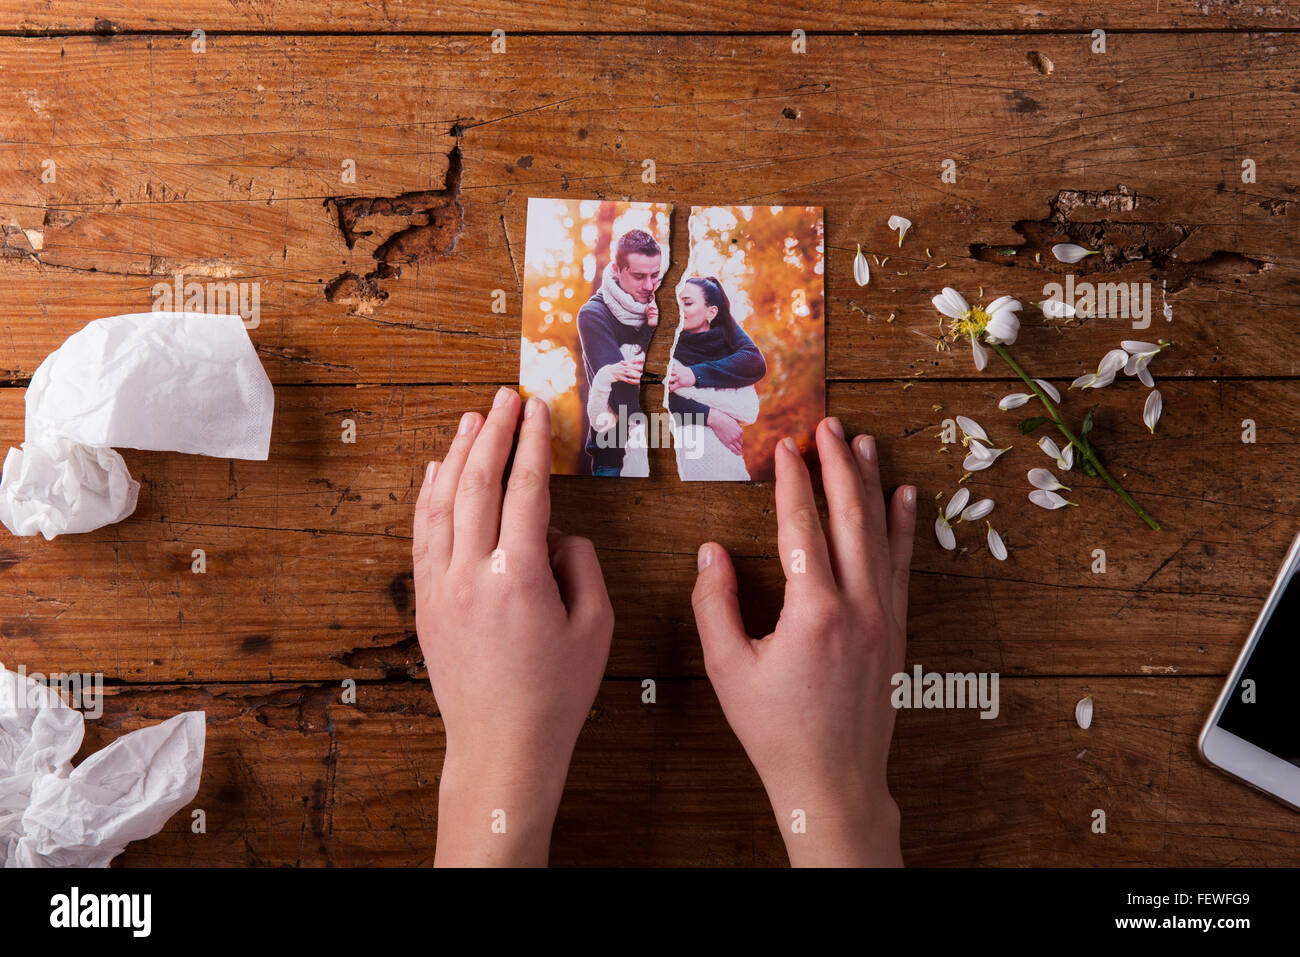 Unrecognizable sad woman holding torn picture of couple in love. - Stock Image